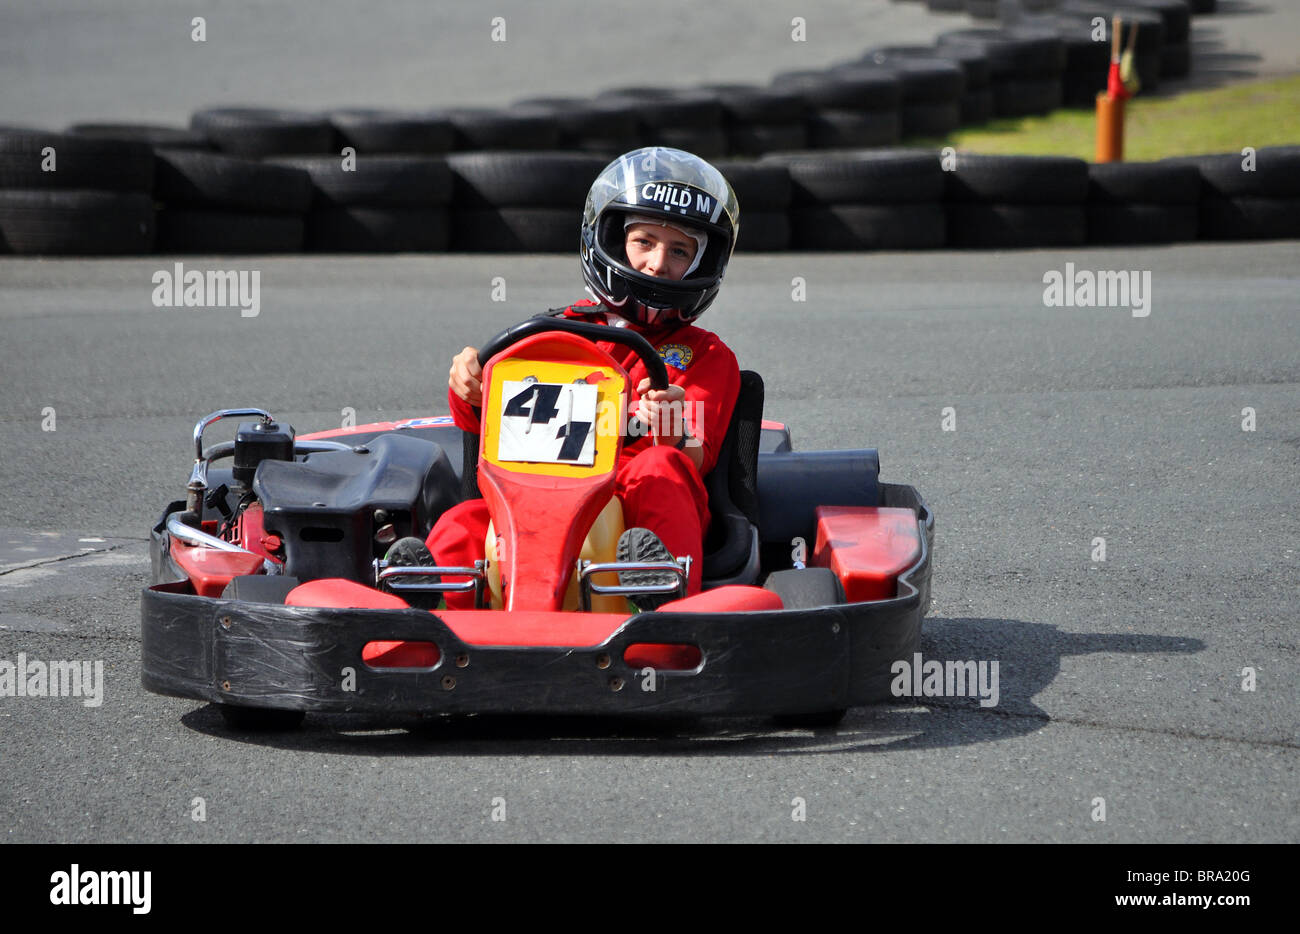 a young boy at a go-kart racing event, uk Stock Photo: 31568560 - Alamy